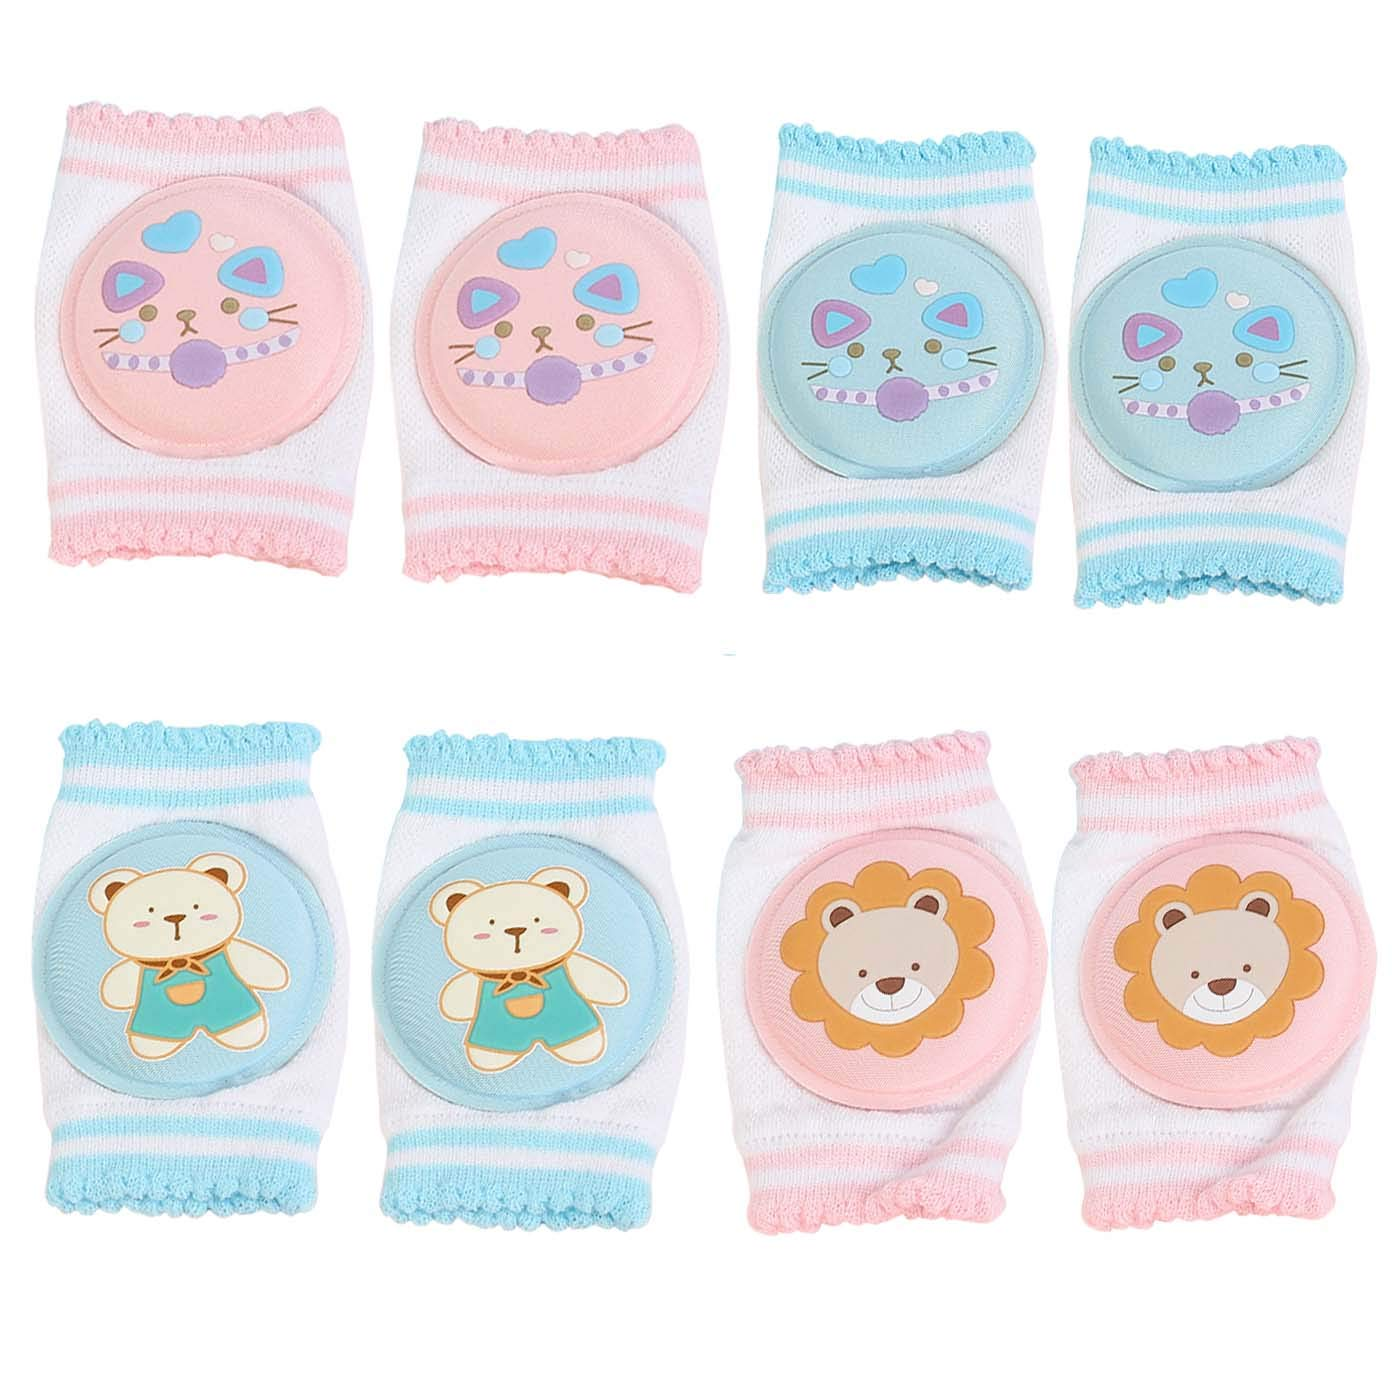 4 Pairs Baby Crawling Knee Pads,Crawling Walking Knee pads Knee Protection Pads for Toddler (002)